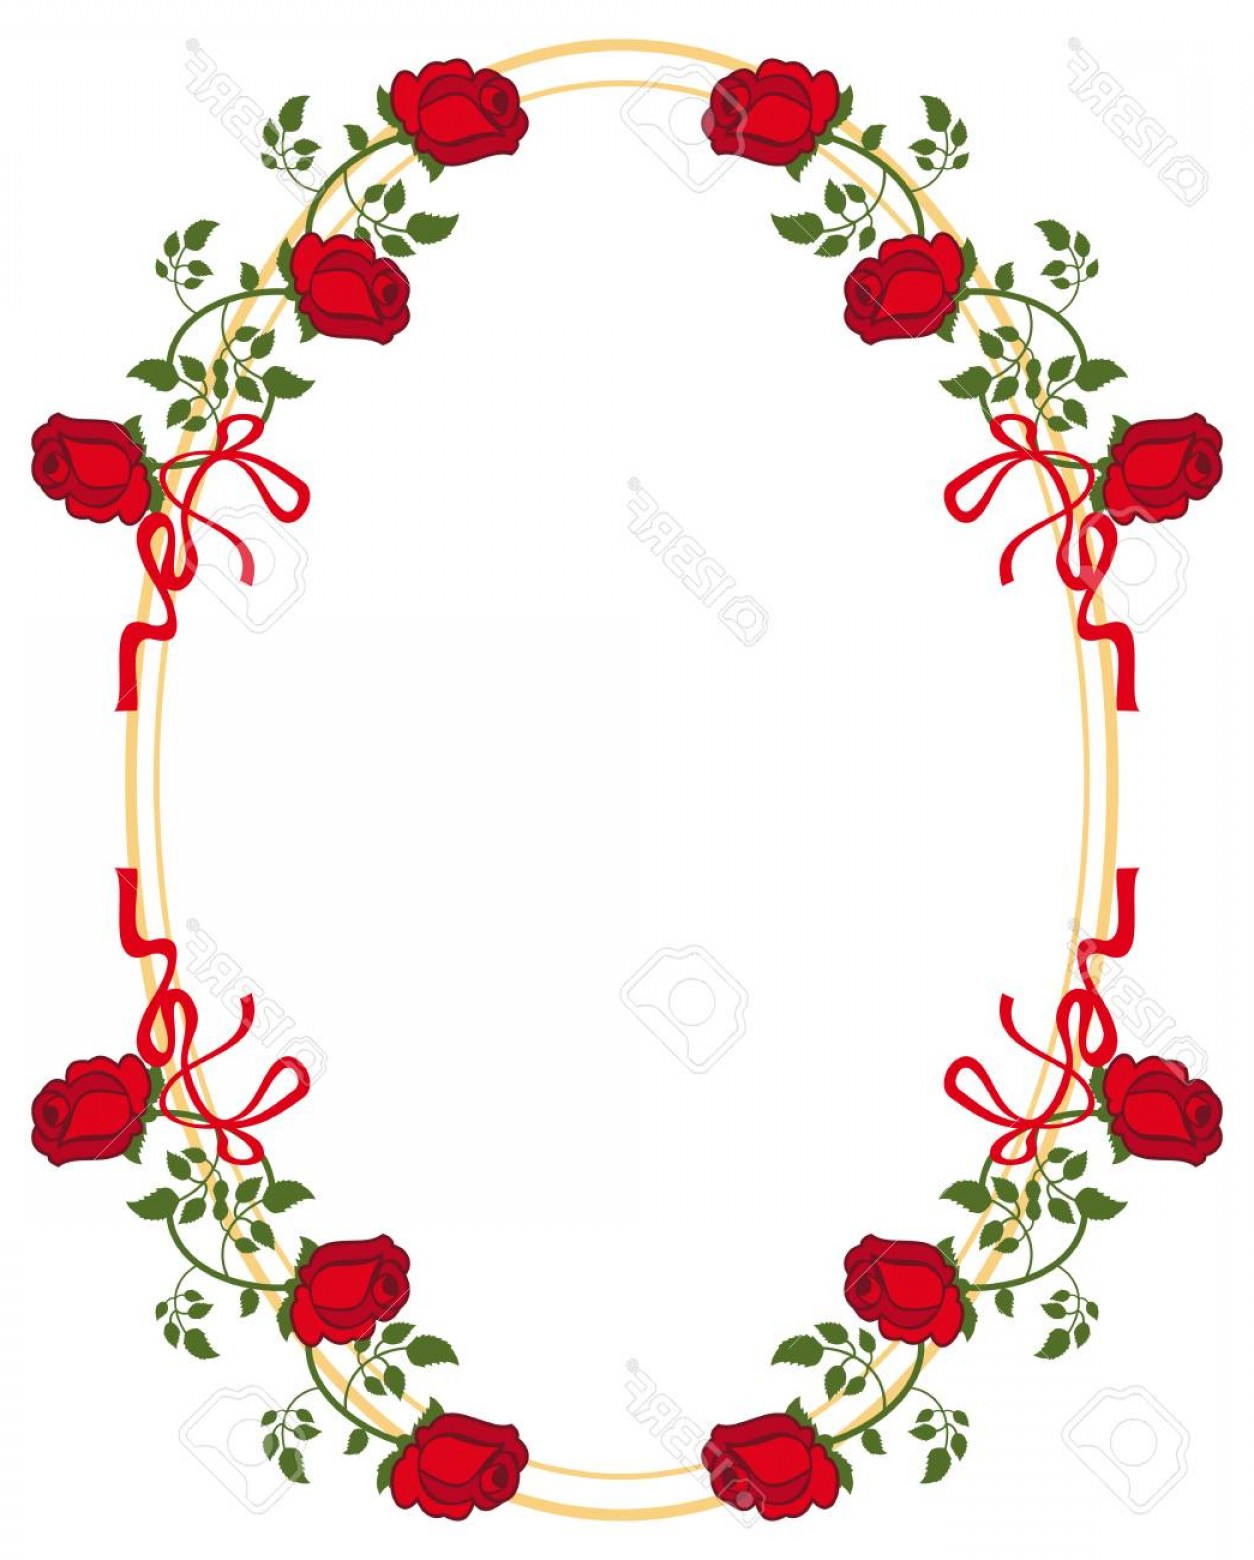 Rose oval frame clipart black and white image free download Photostock Vector Oval Frame With Red Roses Vector Clip Art ... image free download